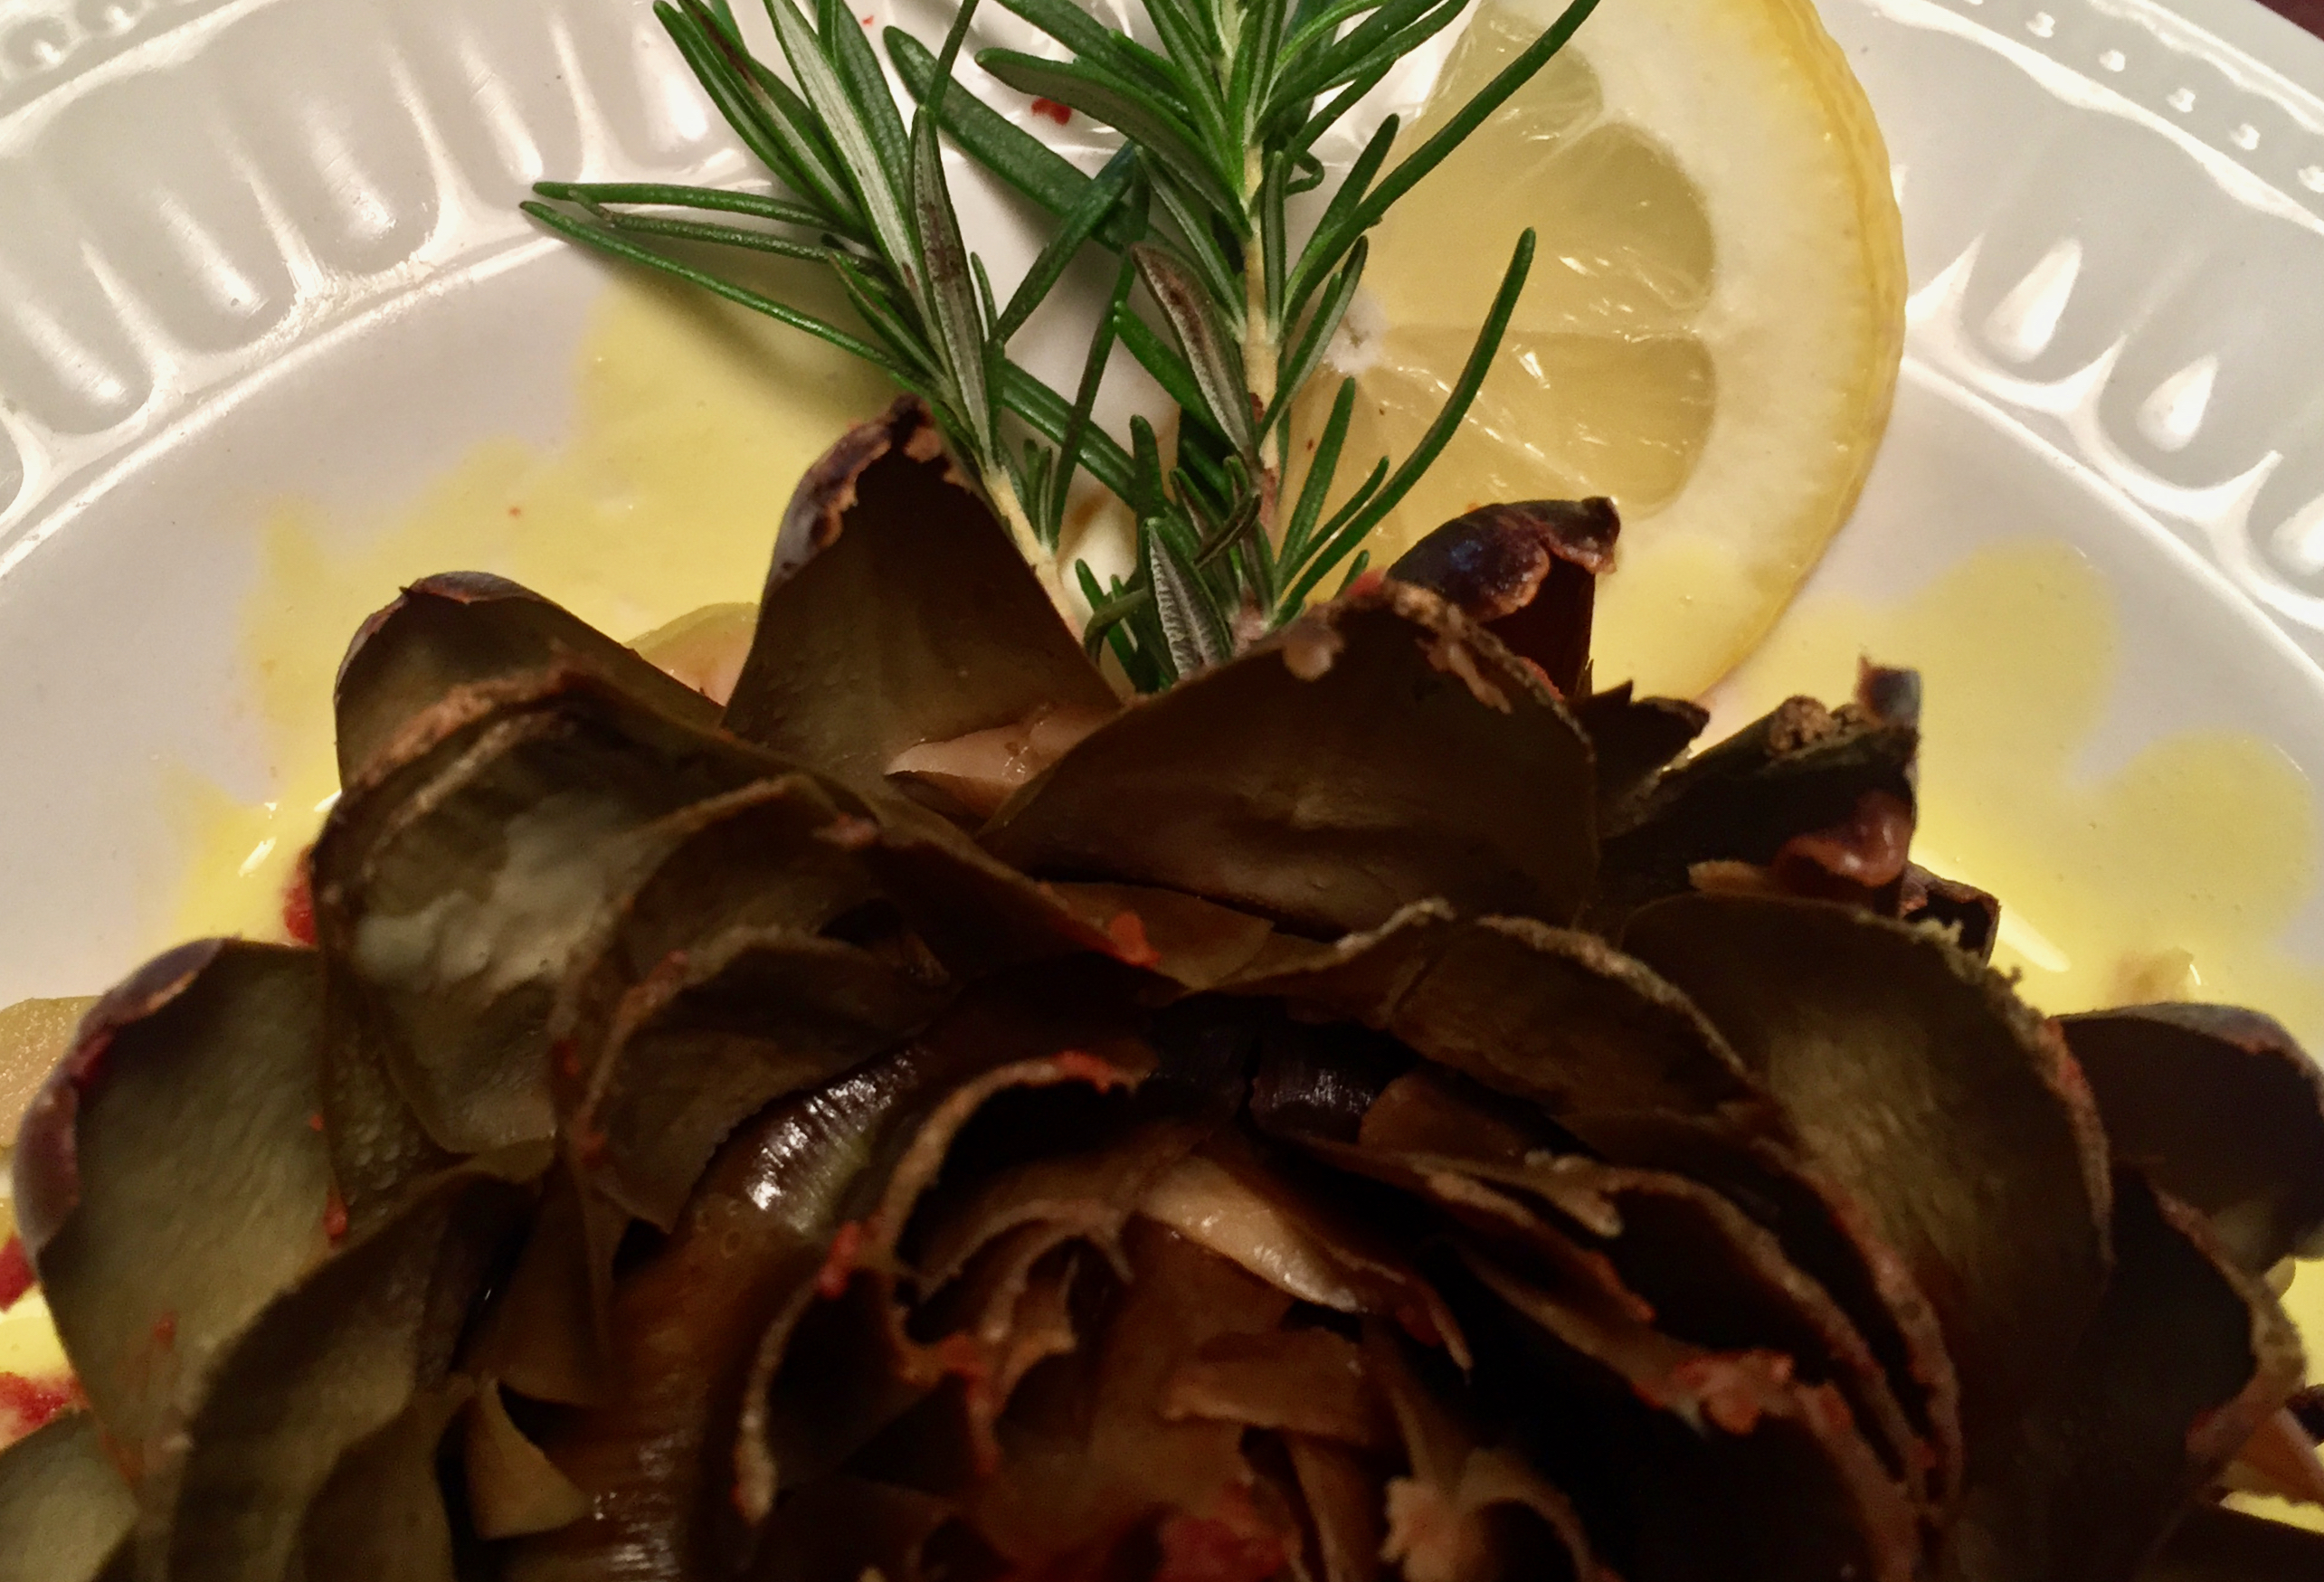 Roman Slow Cooker Artichokes, an Easy Spring Appetizer